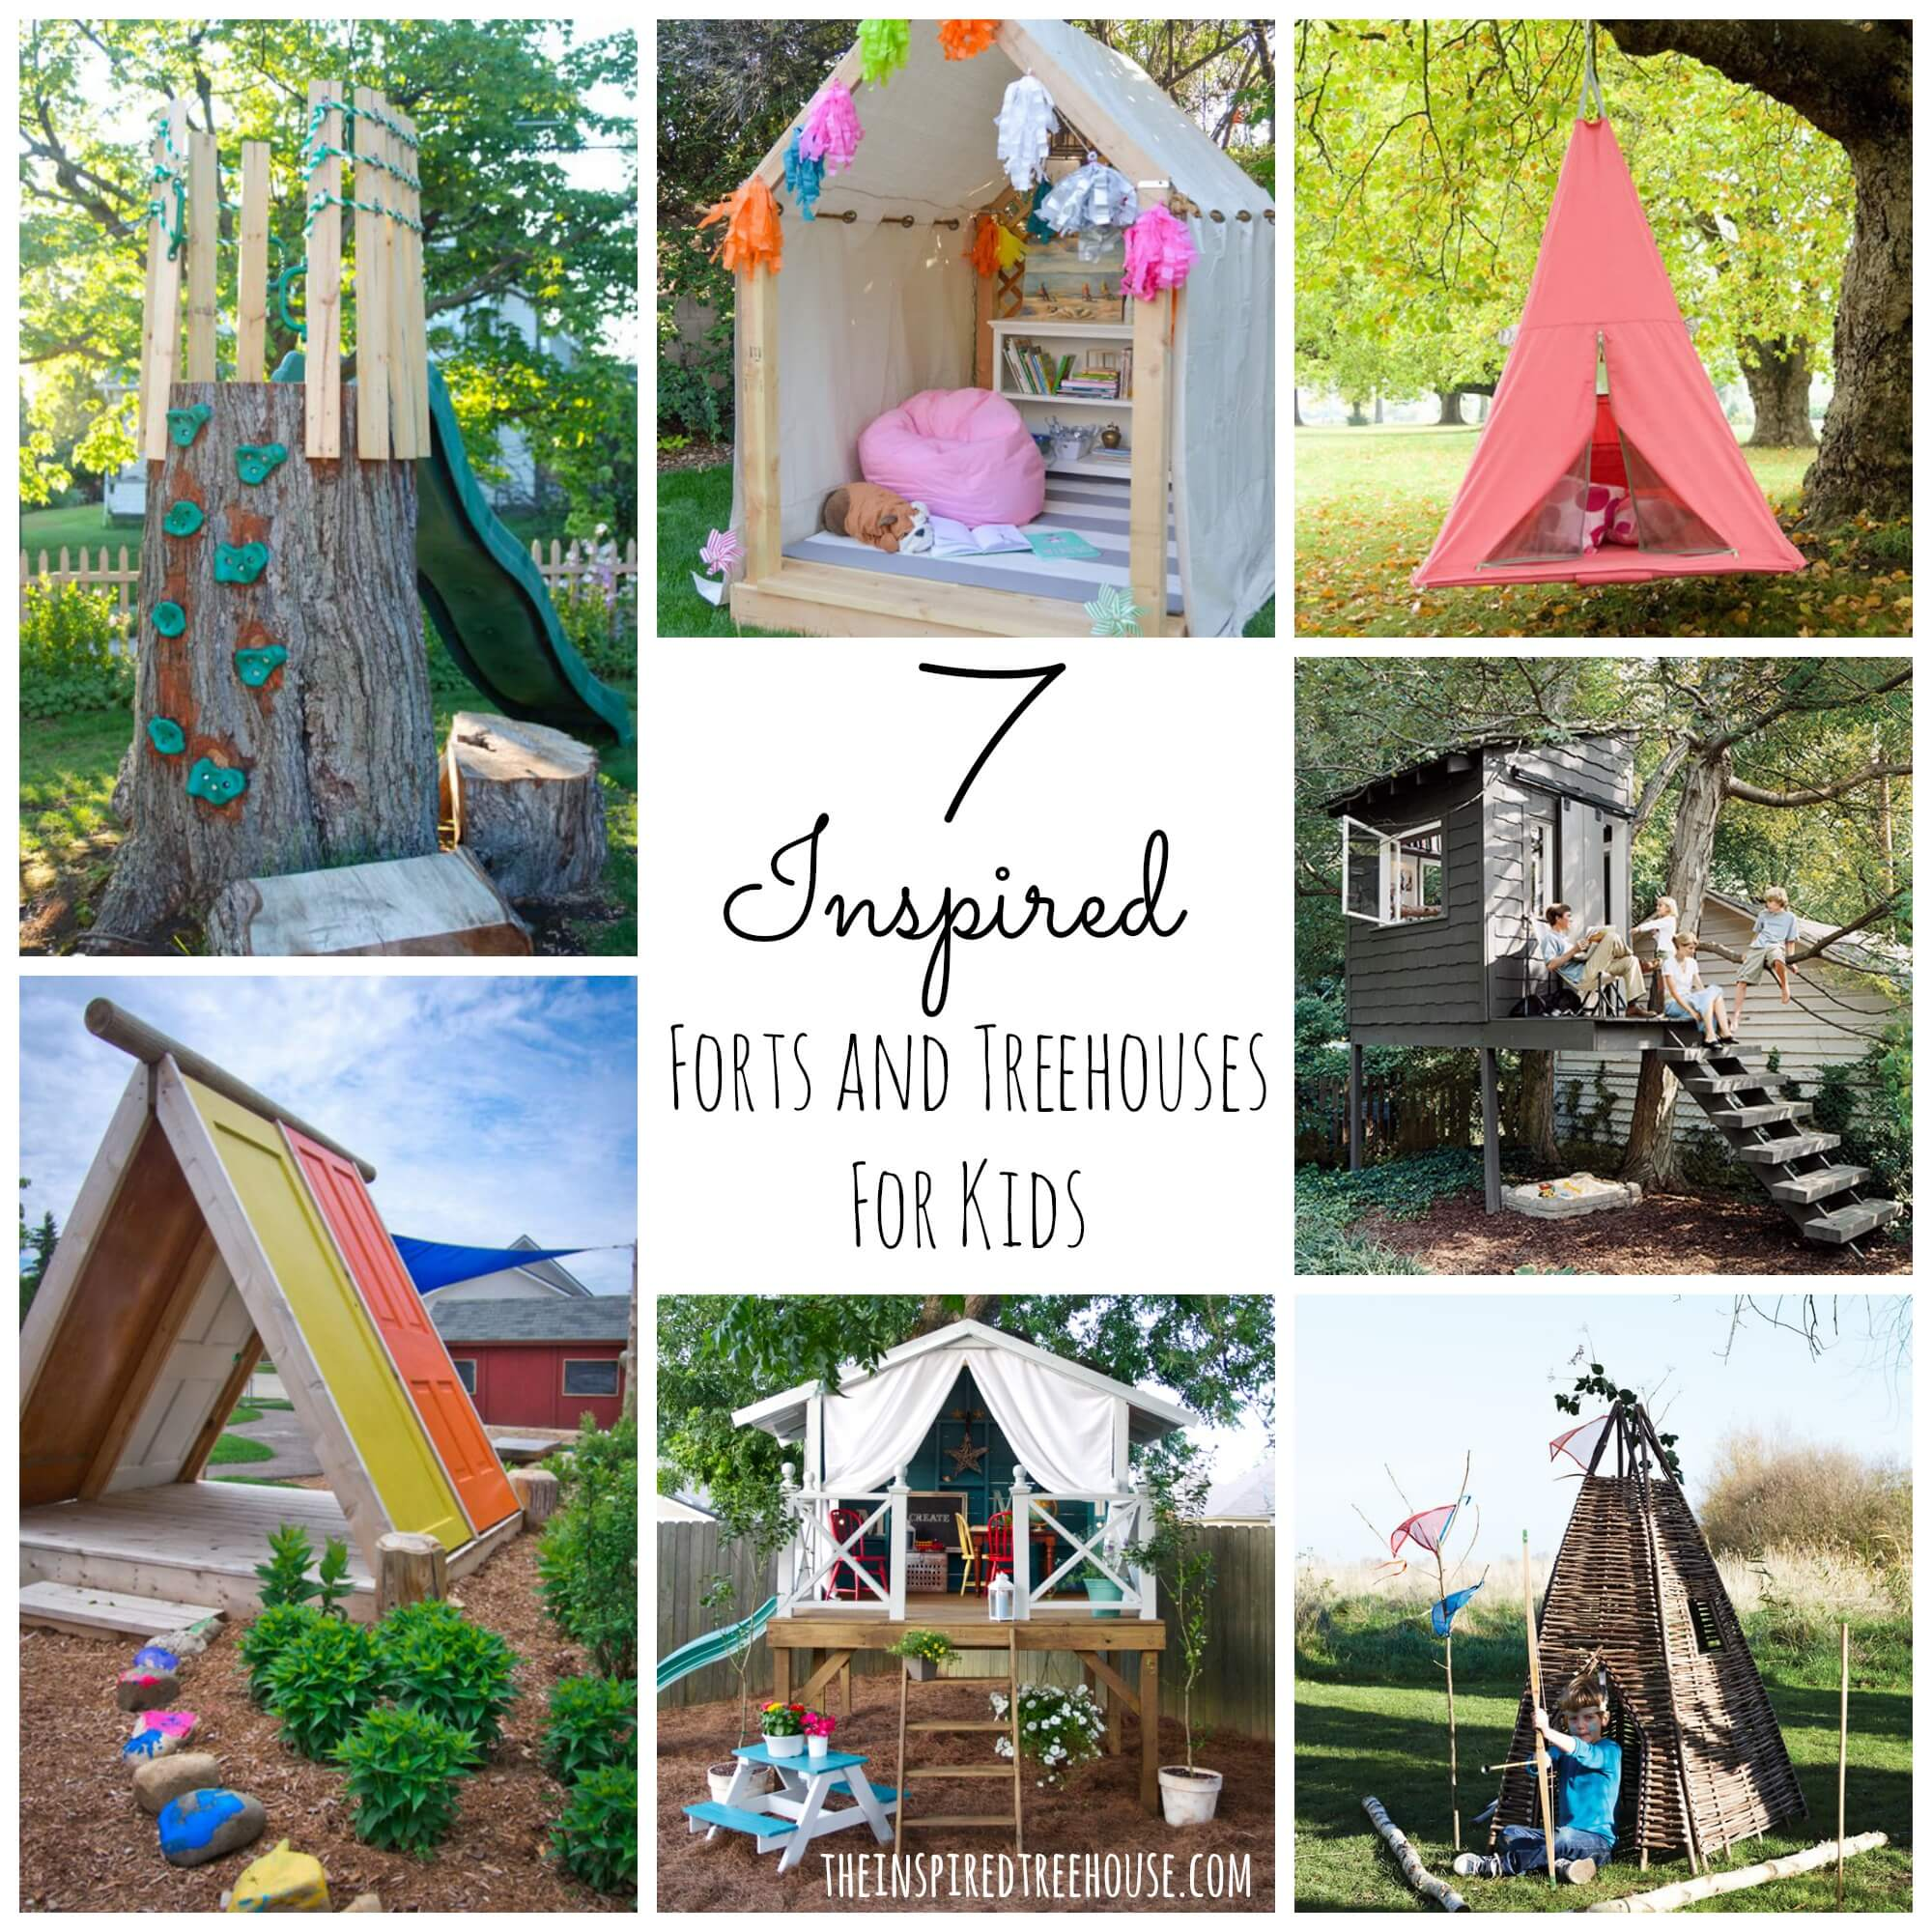 7 inspired forts and treehouse designs for kids collage